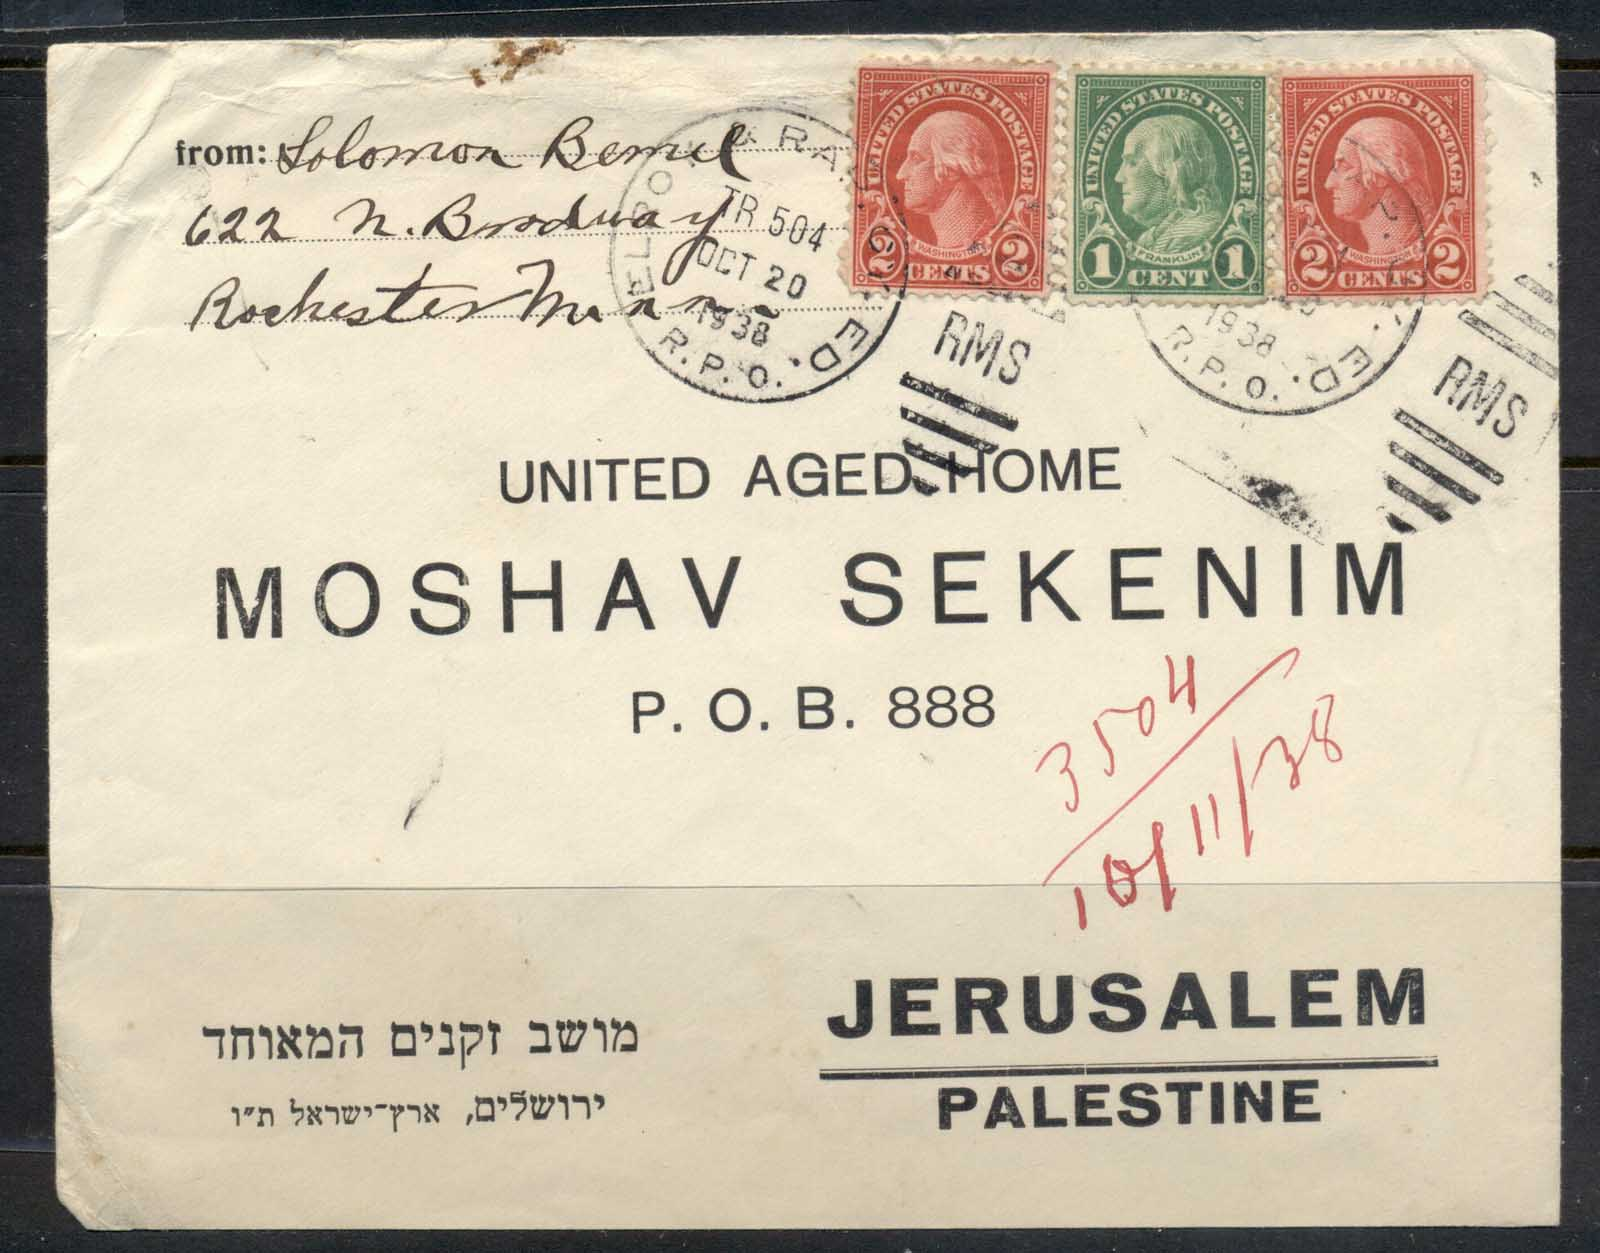 USA 1922-38 Fourth Bureau Elroy 1938 to United Aged Home Palestine cover